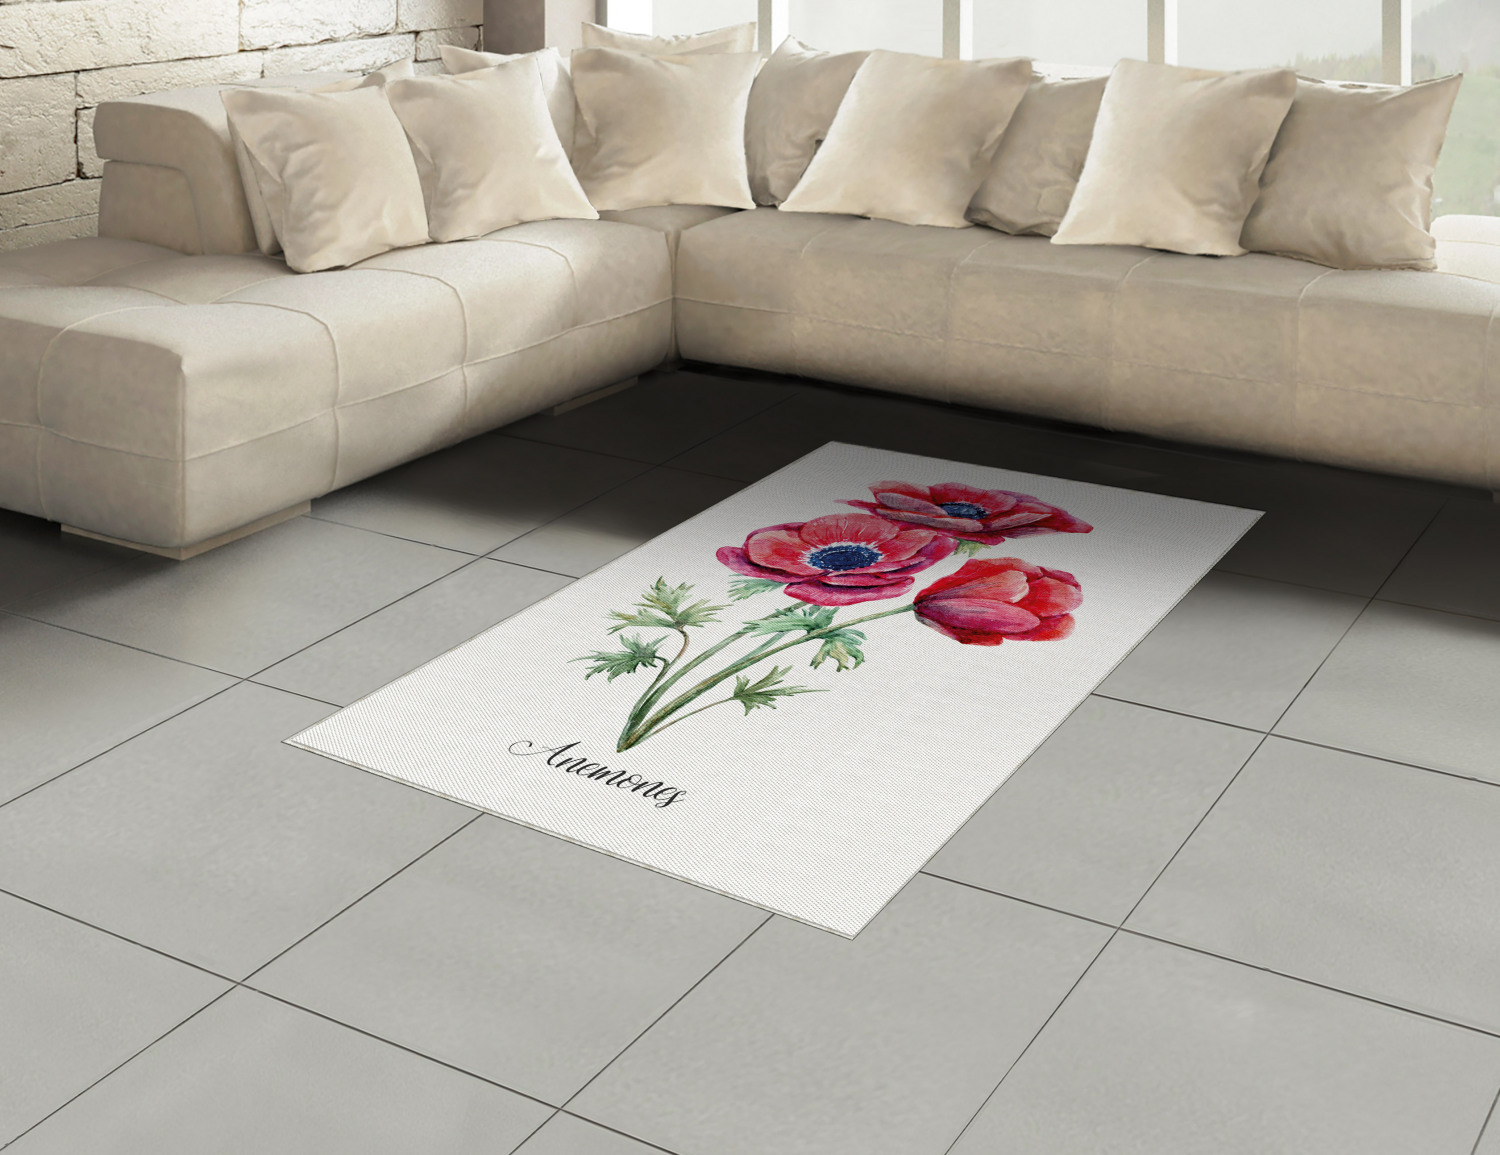 Anemone-Flower-Area-Rug-Decor-Flat-Woven-Accent-Rug-Home-Decor-2-Sizes-Ambesonne thumbnail 54